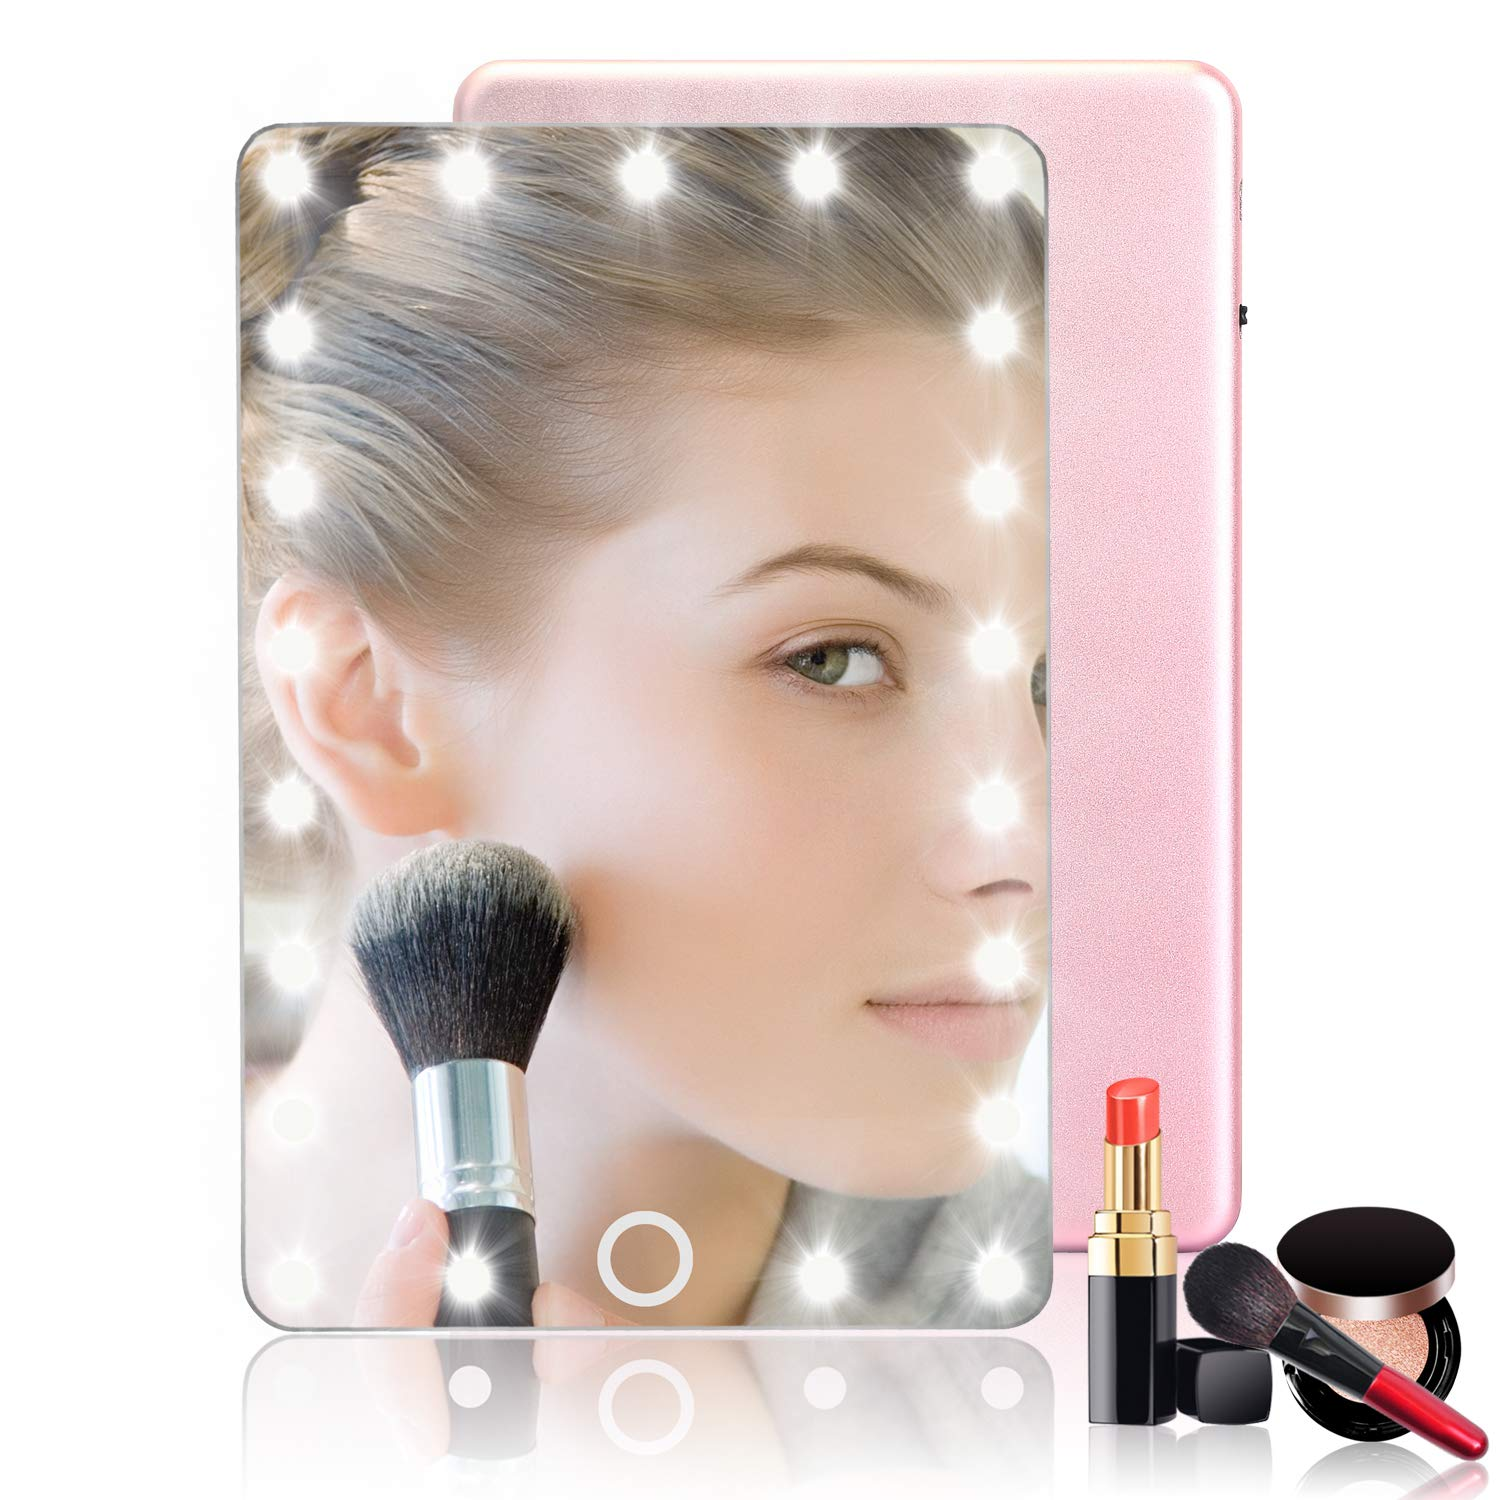 Ledess Led Travel Makeup Mirror with Light,8 Inch Lighted Mirror,HQ Glass Mirror & Anodic Aluminum Back Cover,Touch Screen Dimmable,USB Rechargeable,Compact & Portable,For Travel & Gift(Rose Gold)